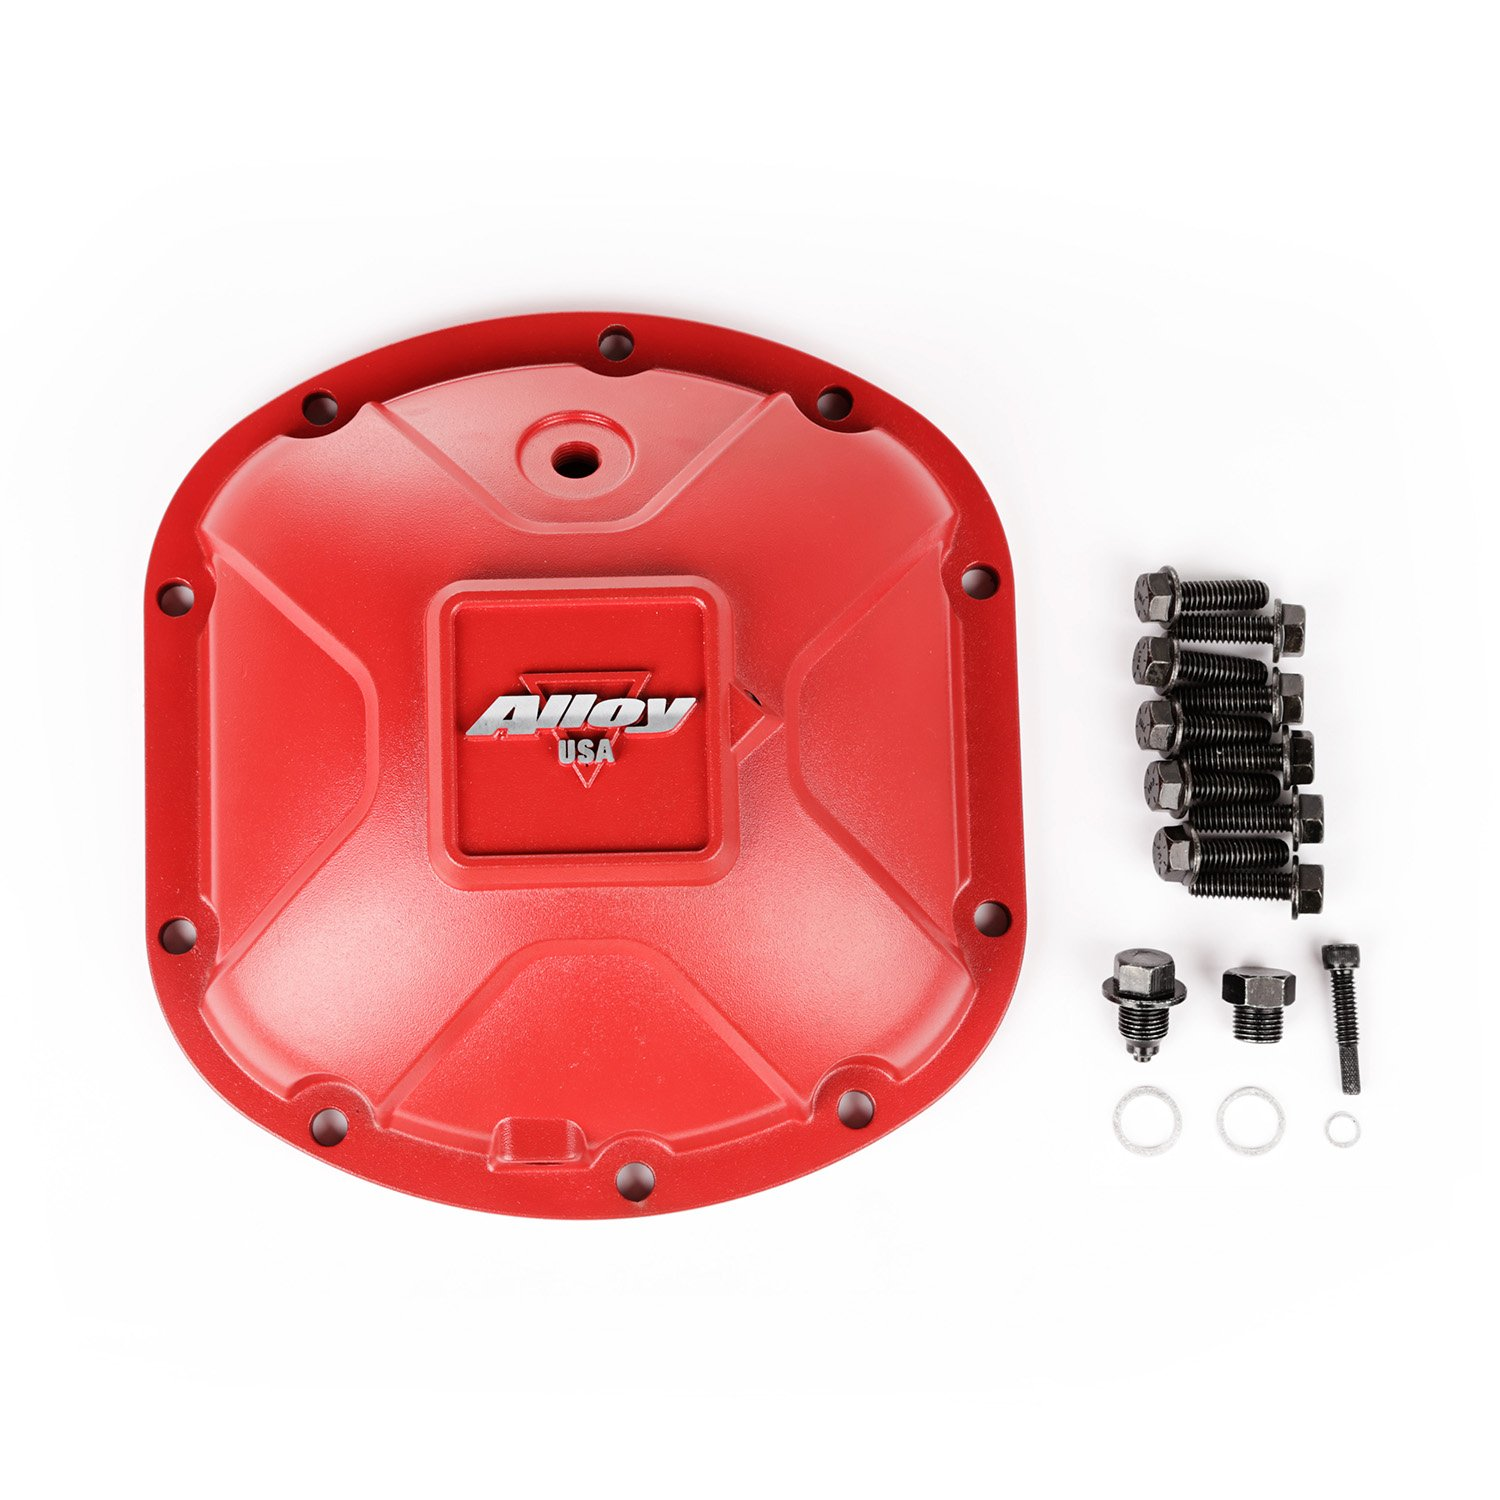 Outland 11210 Red Aluminum Differential Cover for Dana 30, 1 Pack by Outland Automotive